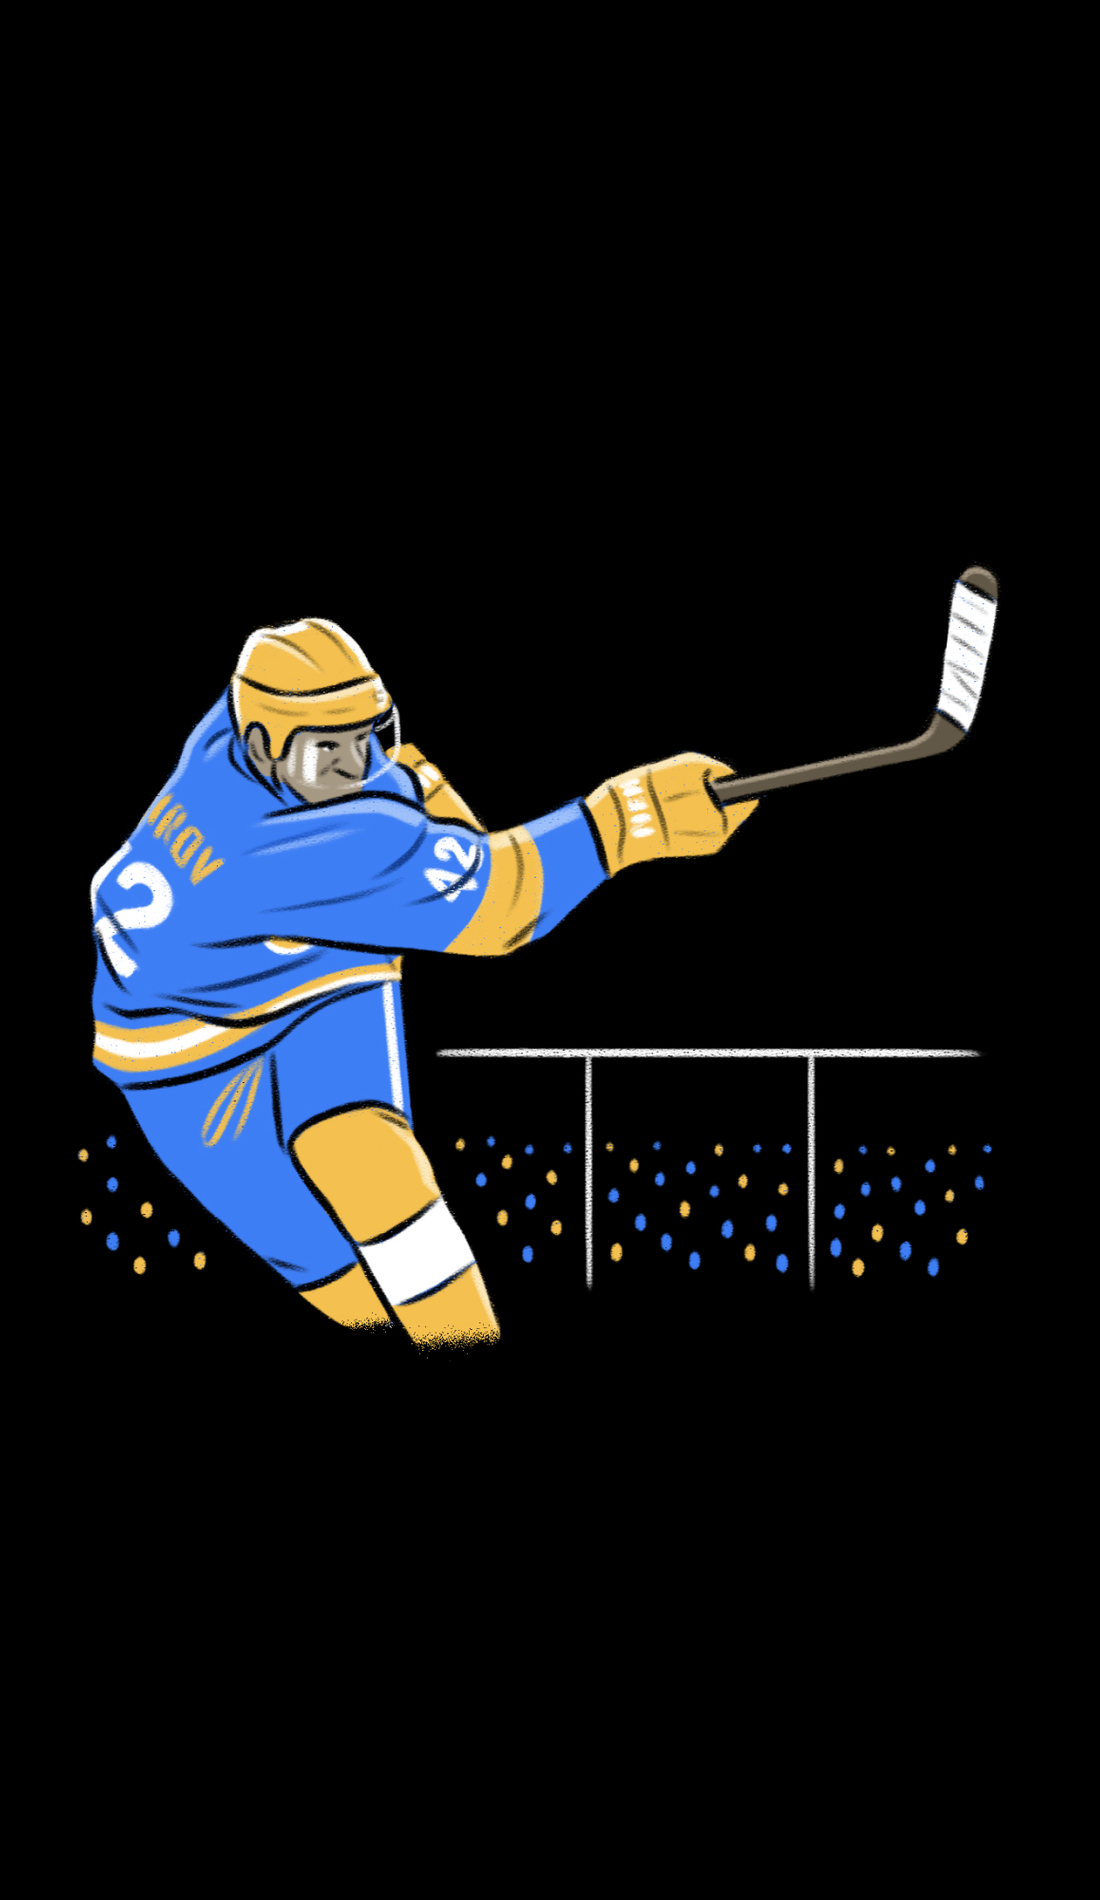 A Cornell Big Red Hockey live event